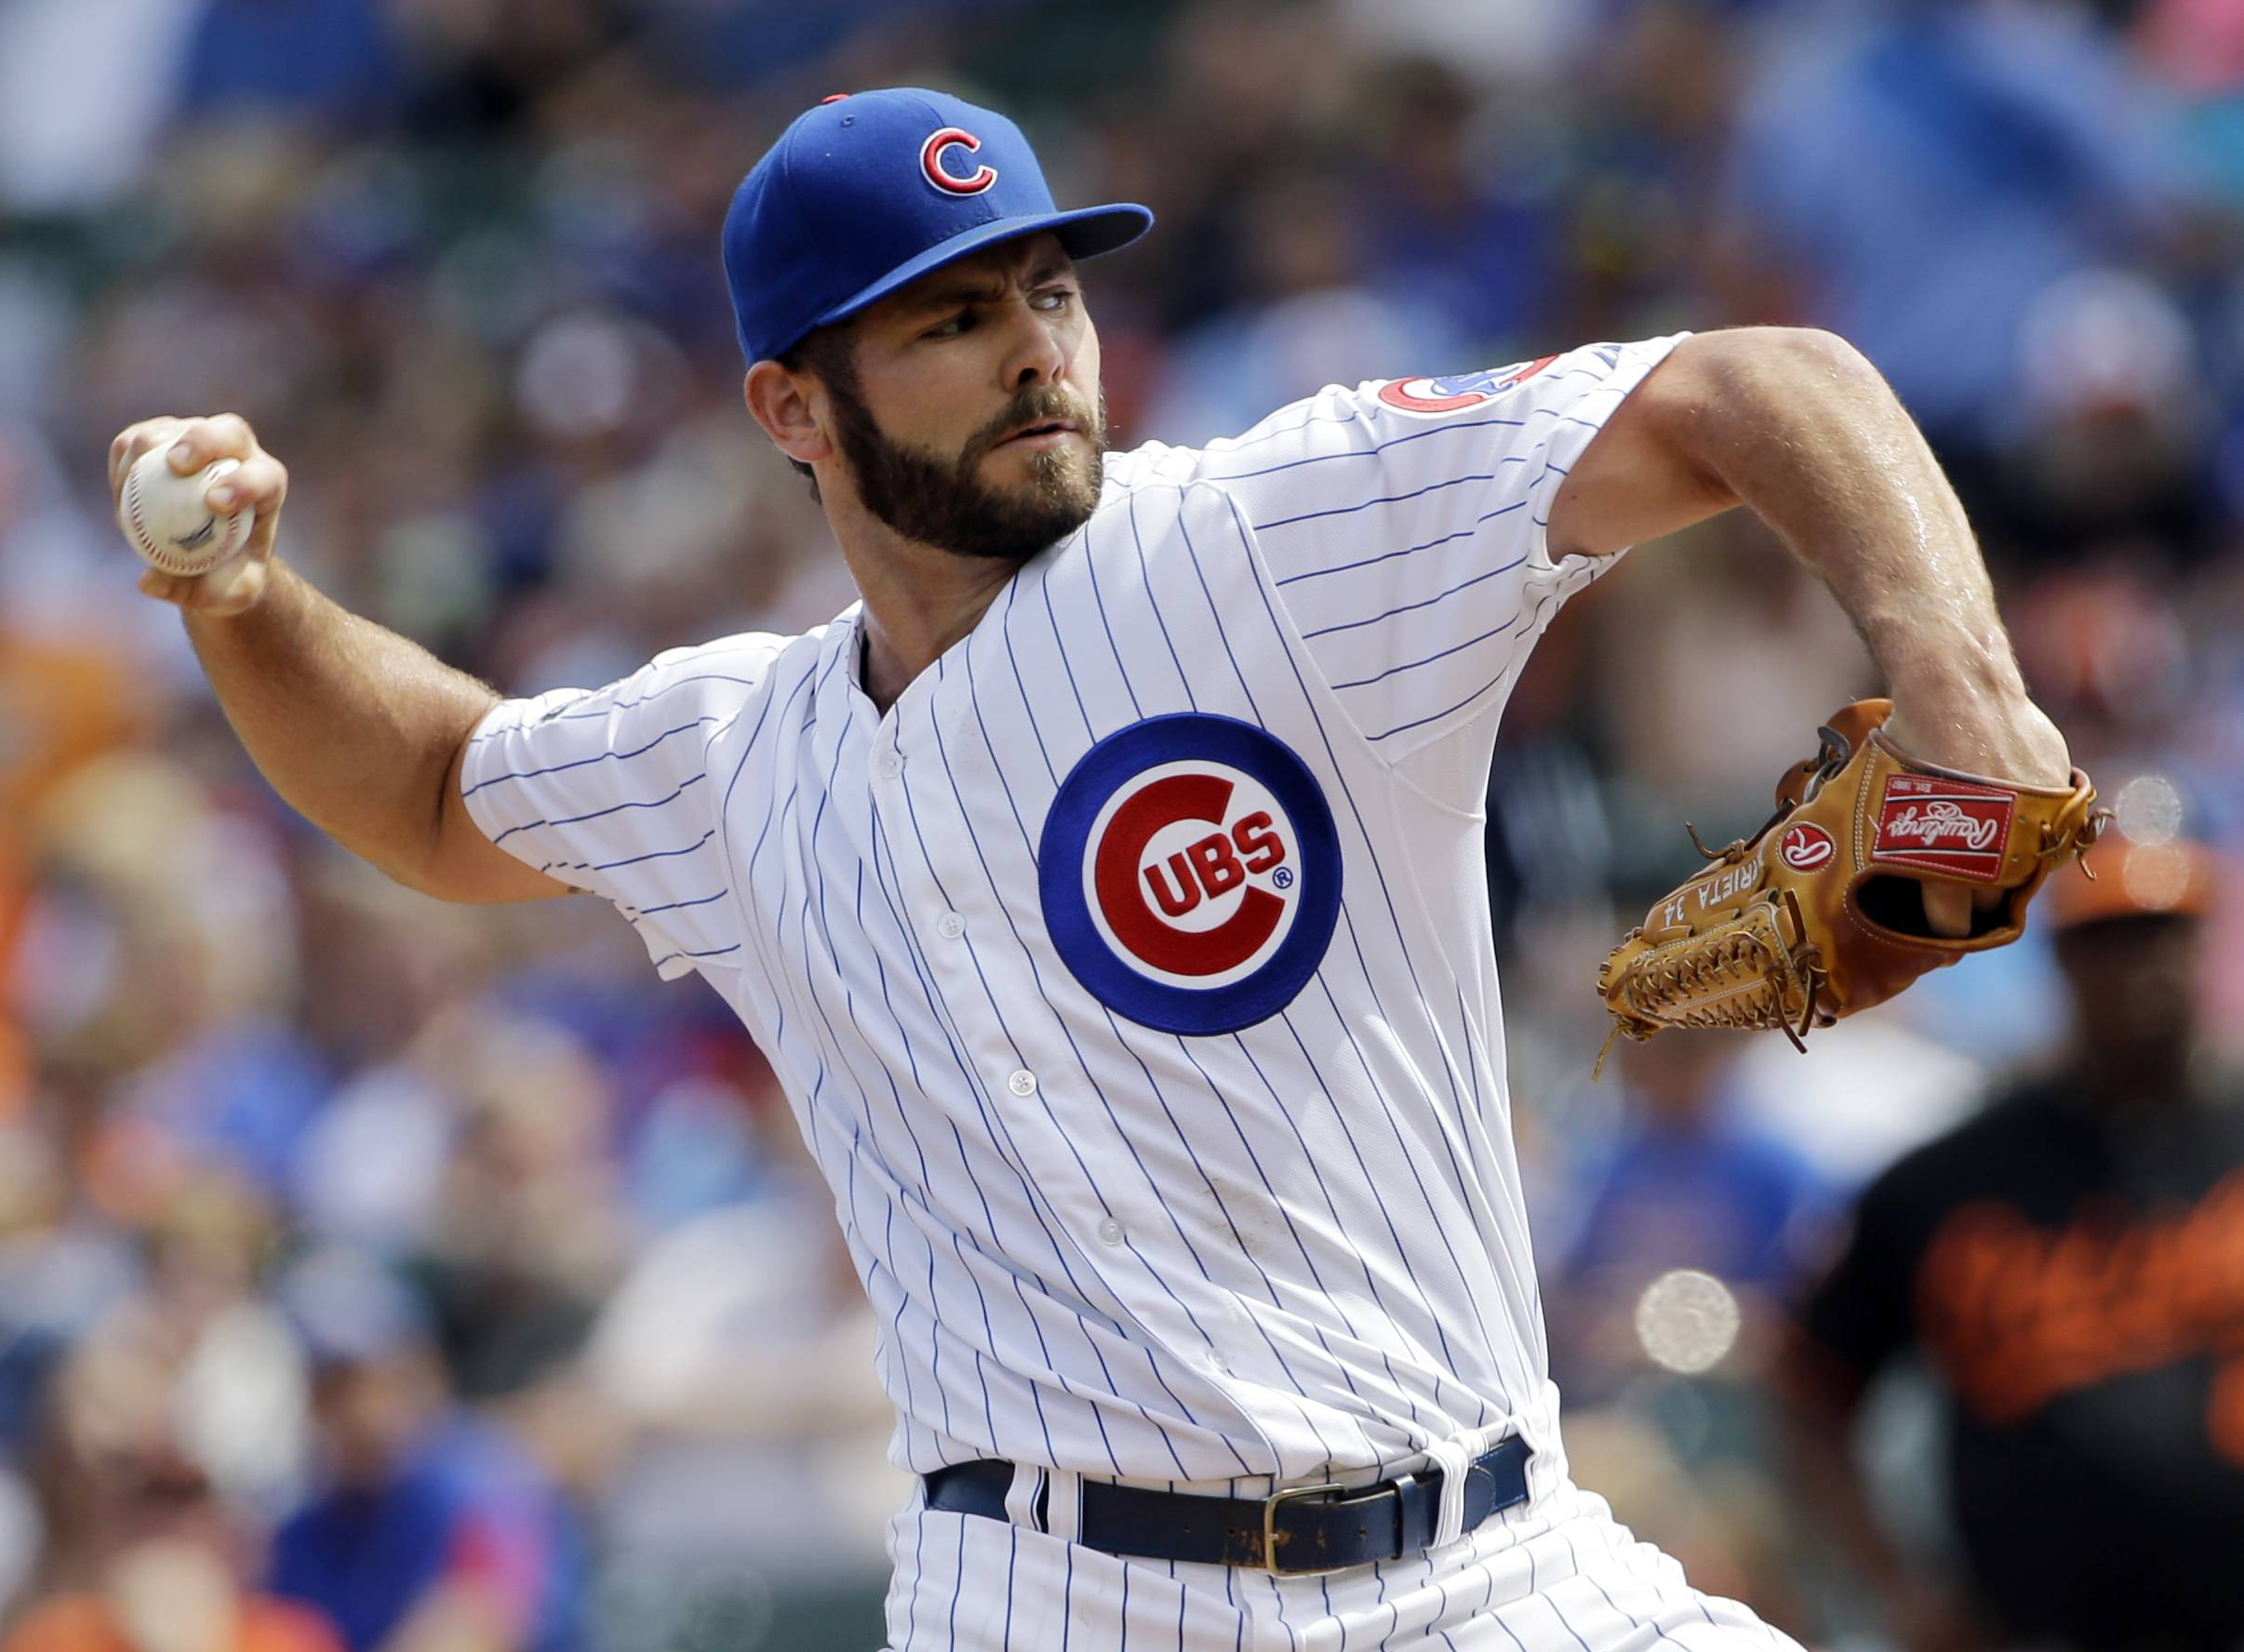 Chicago Cubs starter Jake Arrieta throws against the Baltimore Orioles during the first inning of an interleague baseball game in Chicago, Friday, Aug. 22, 2014. (AP Photo/Nam Y. Huh)